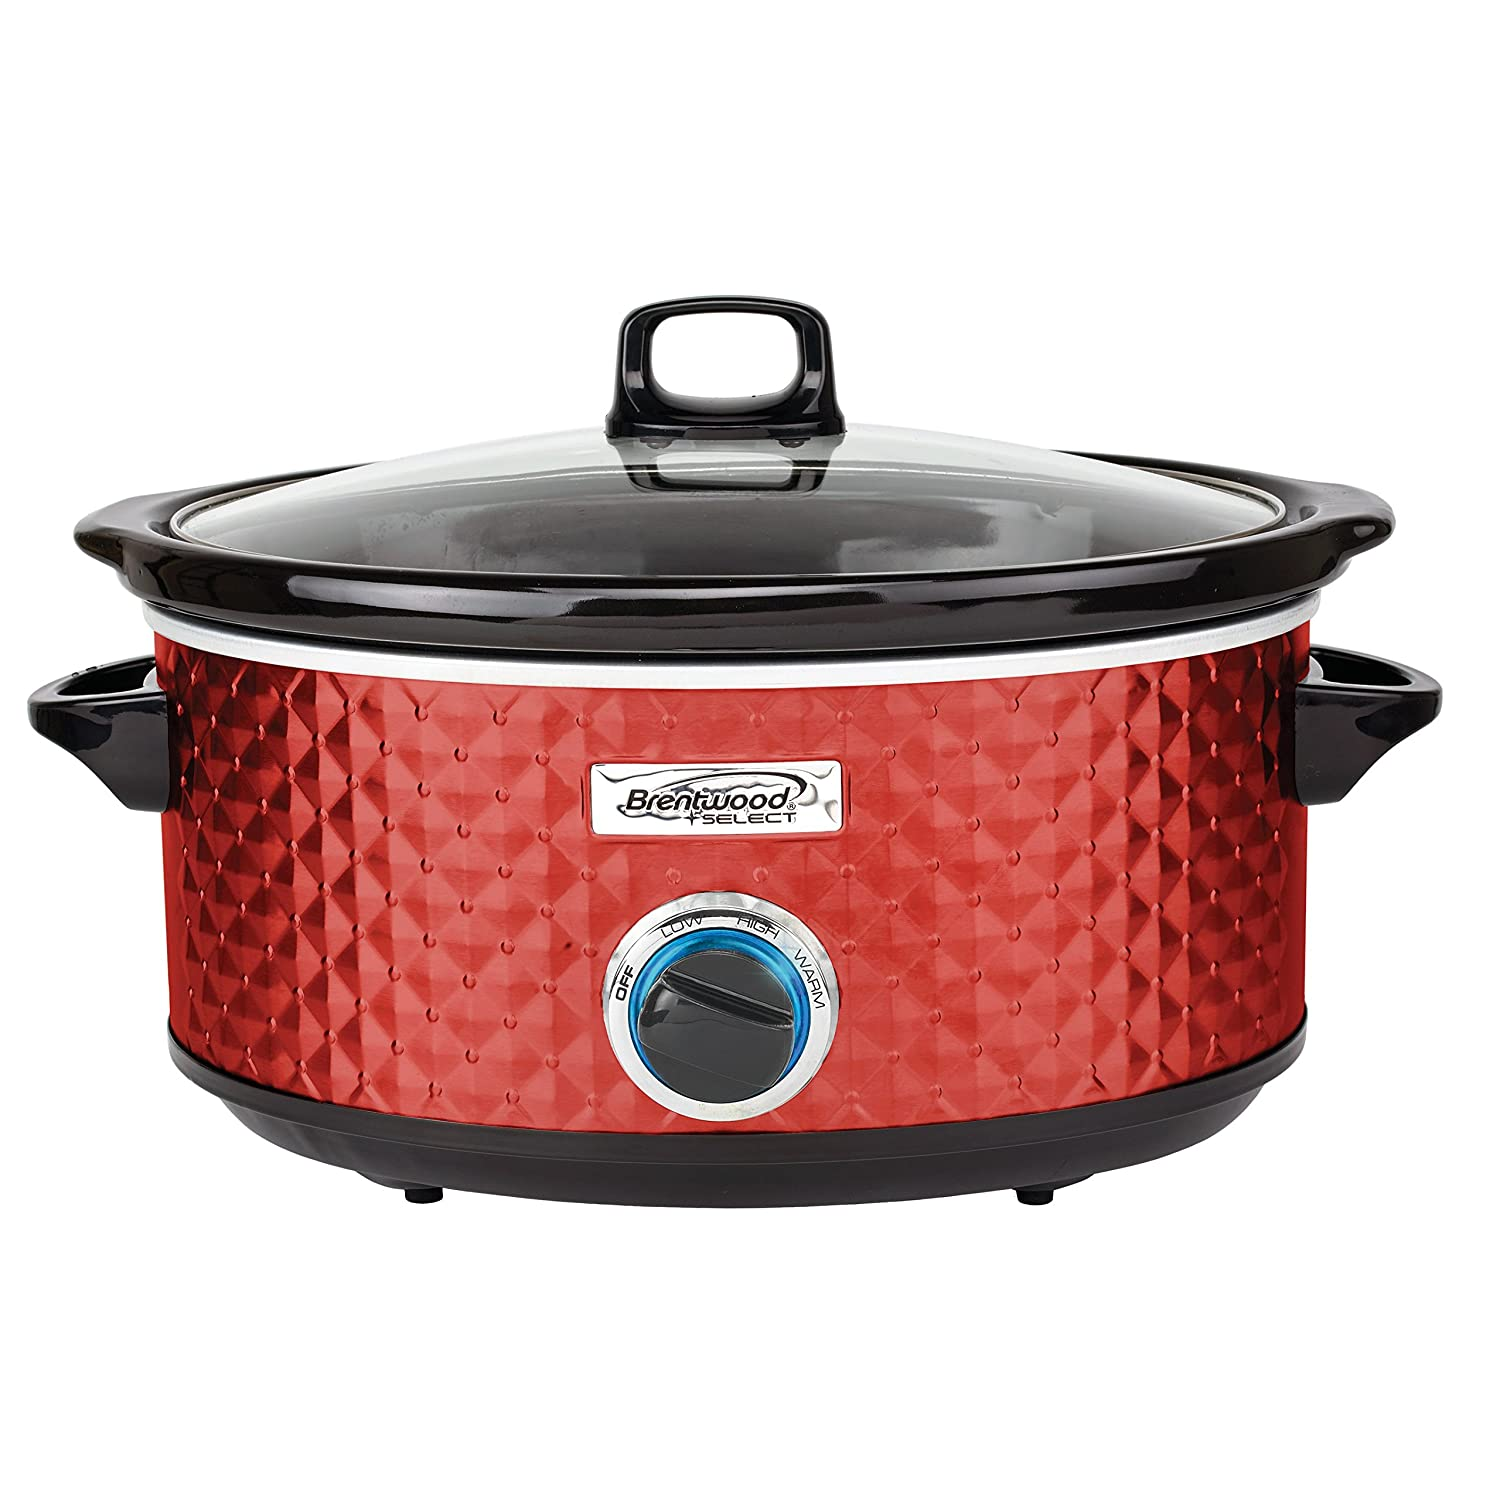 Brentwood Select SC-157R Slow Cooker, 7 Quart, Red